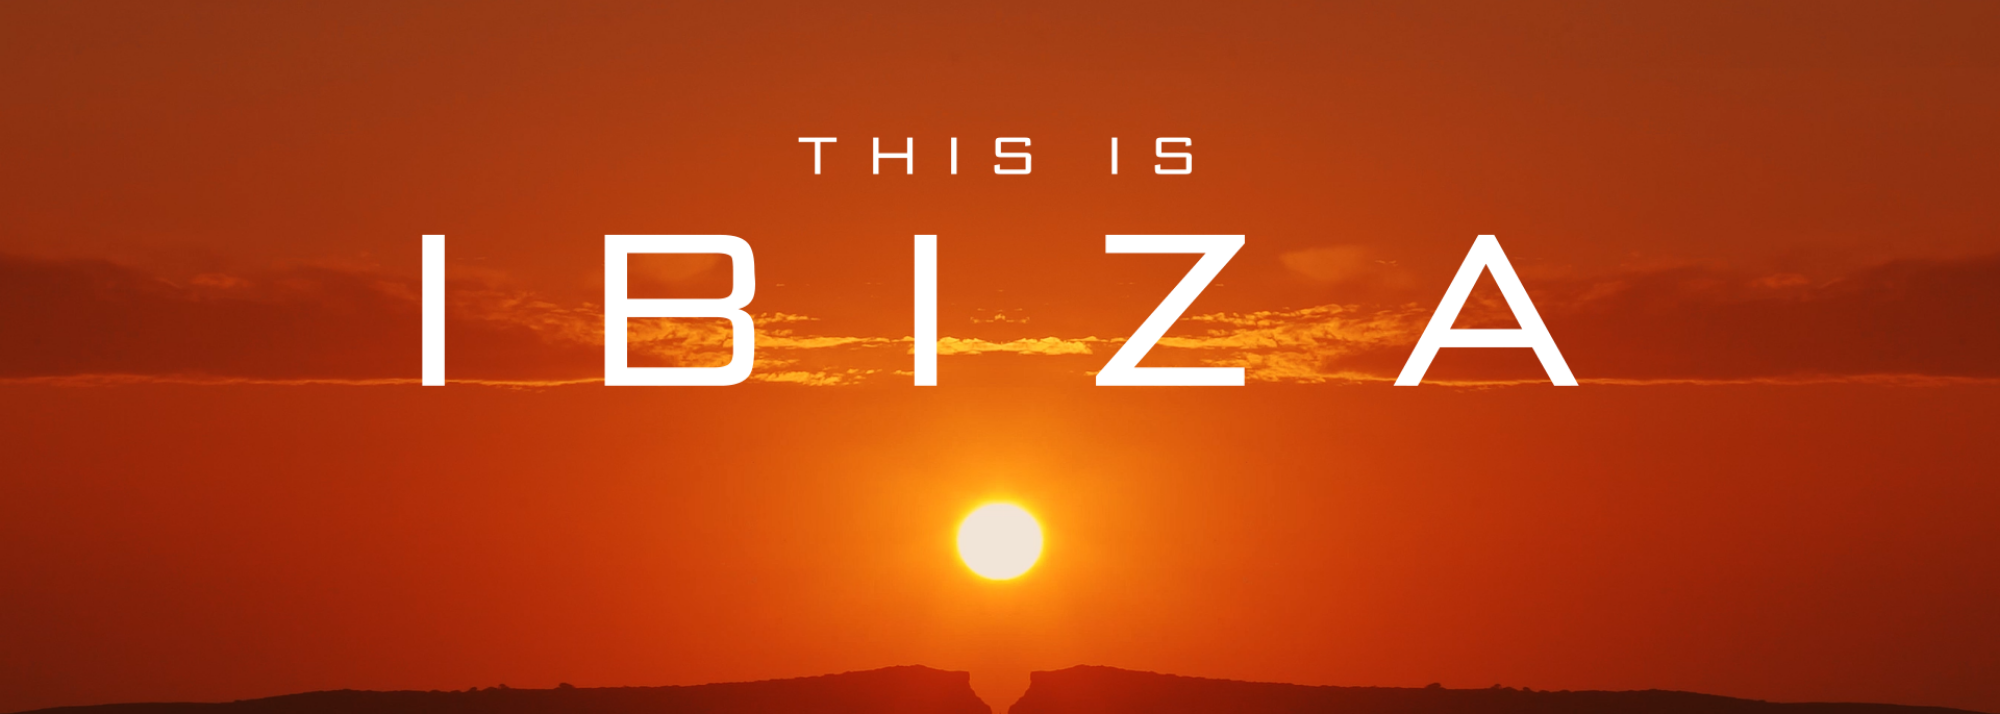 Bam Bu Ku Presents an Open-Air Screening of This Is Ibiza